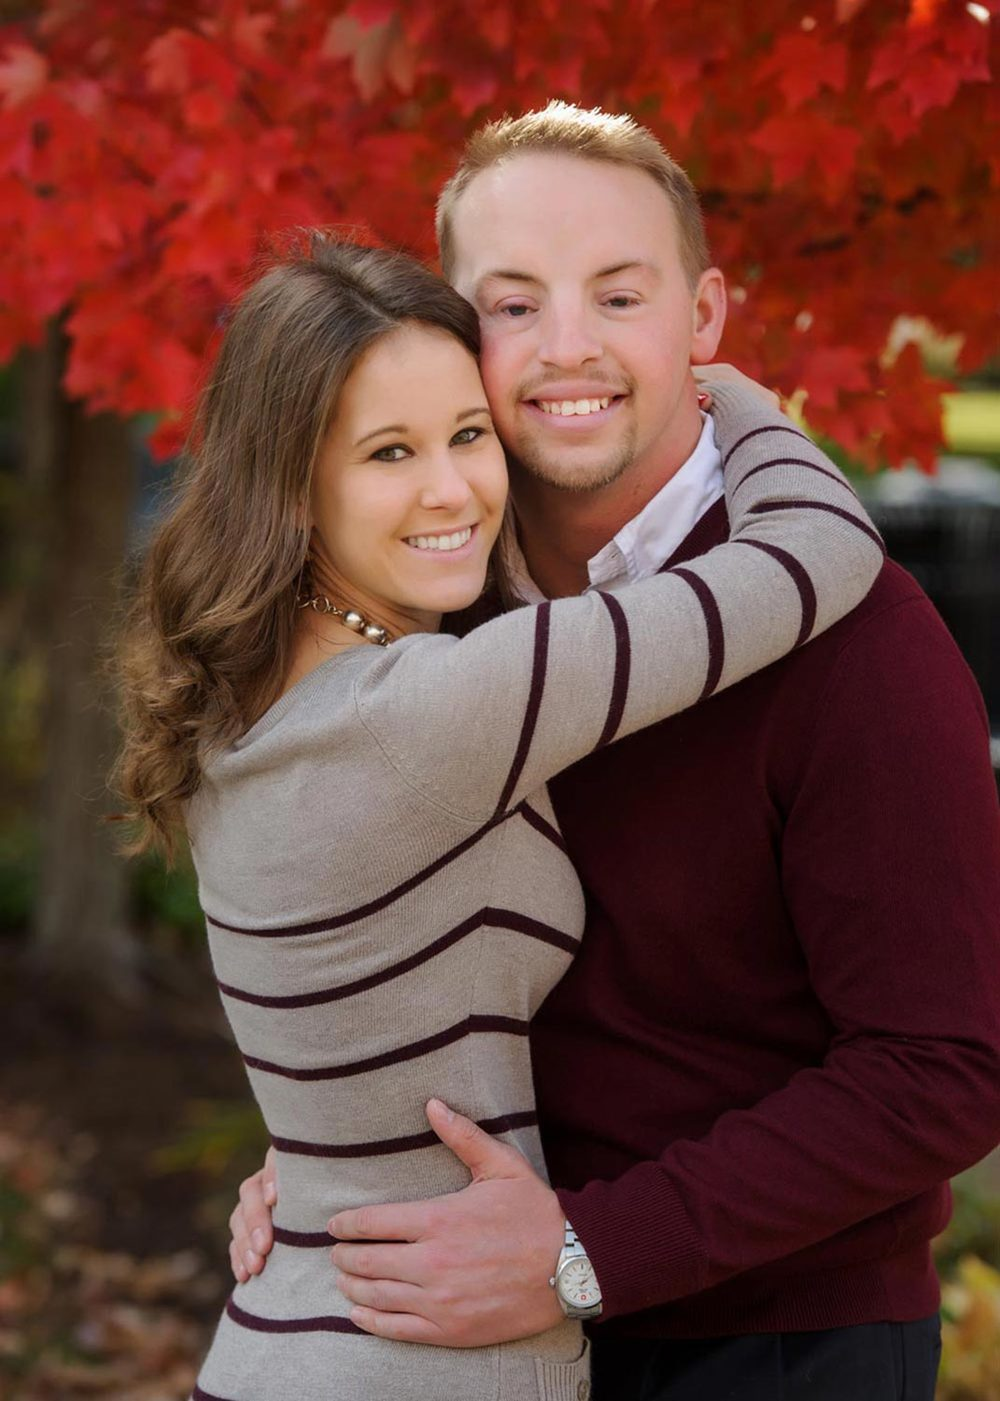 engagement_photographer_nicholasville_ky04_01.jpg